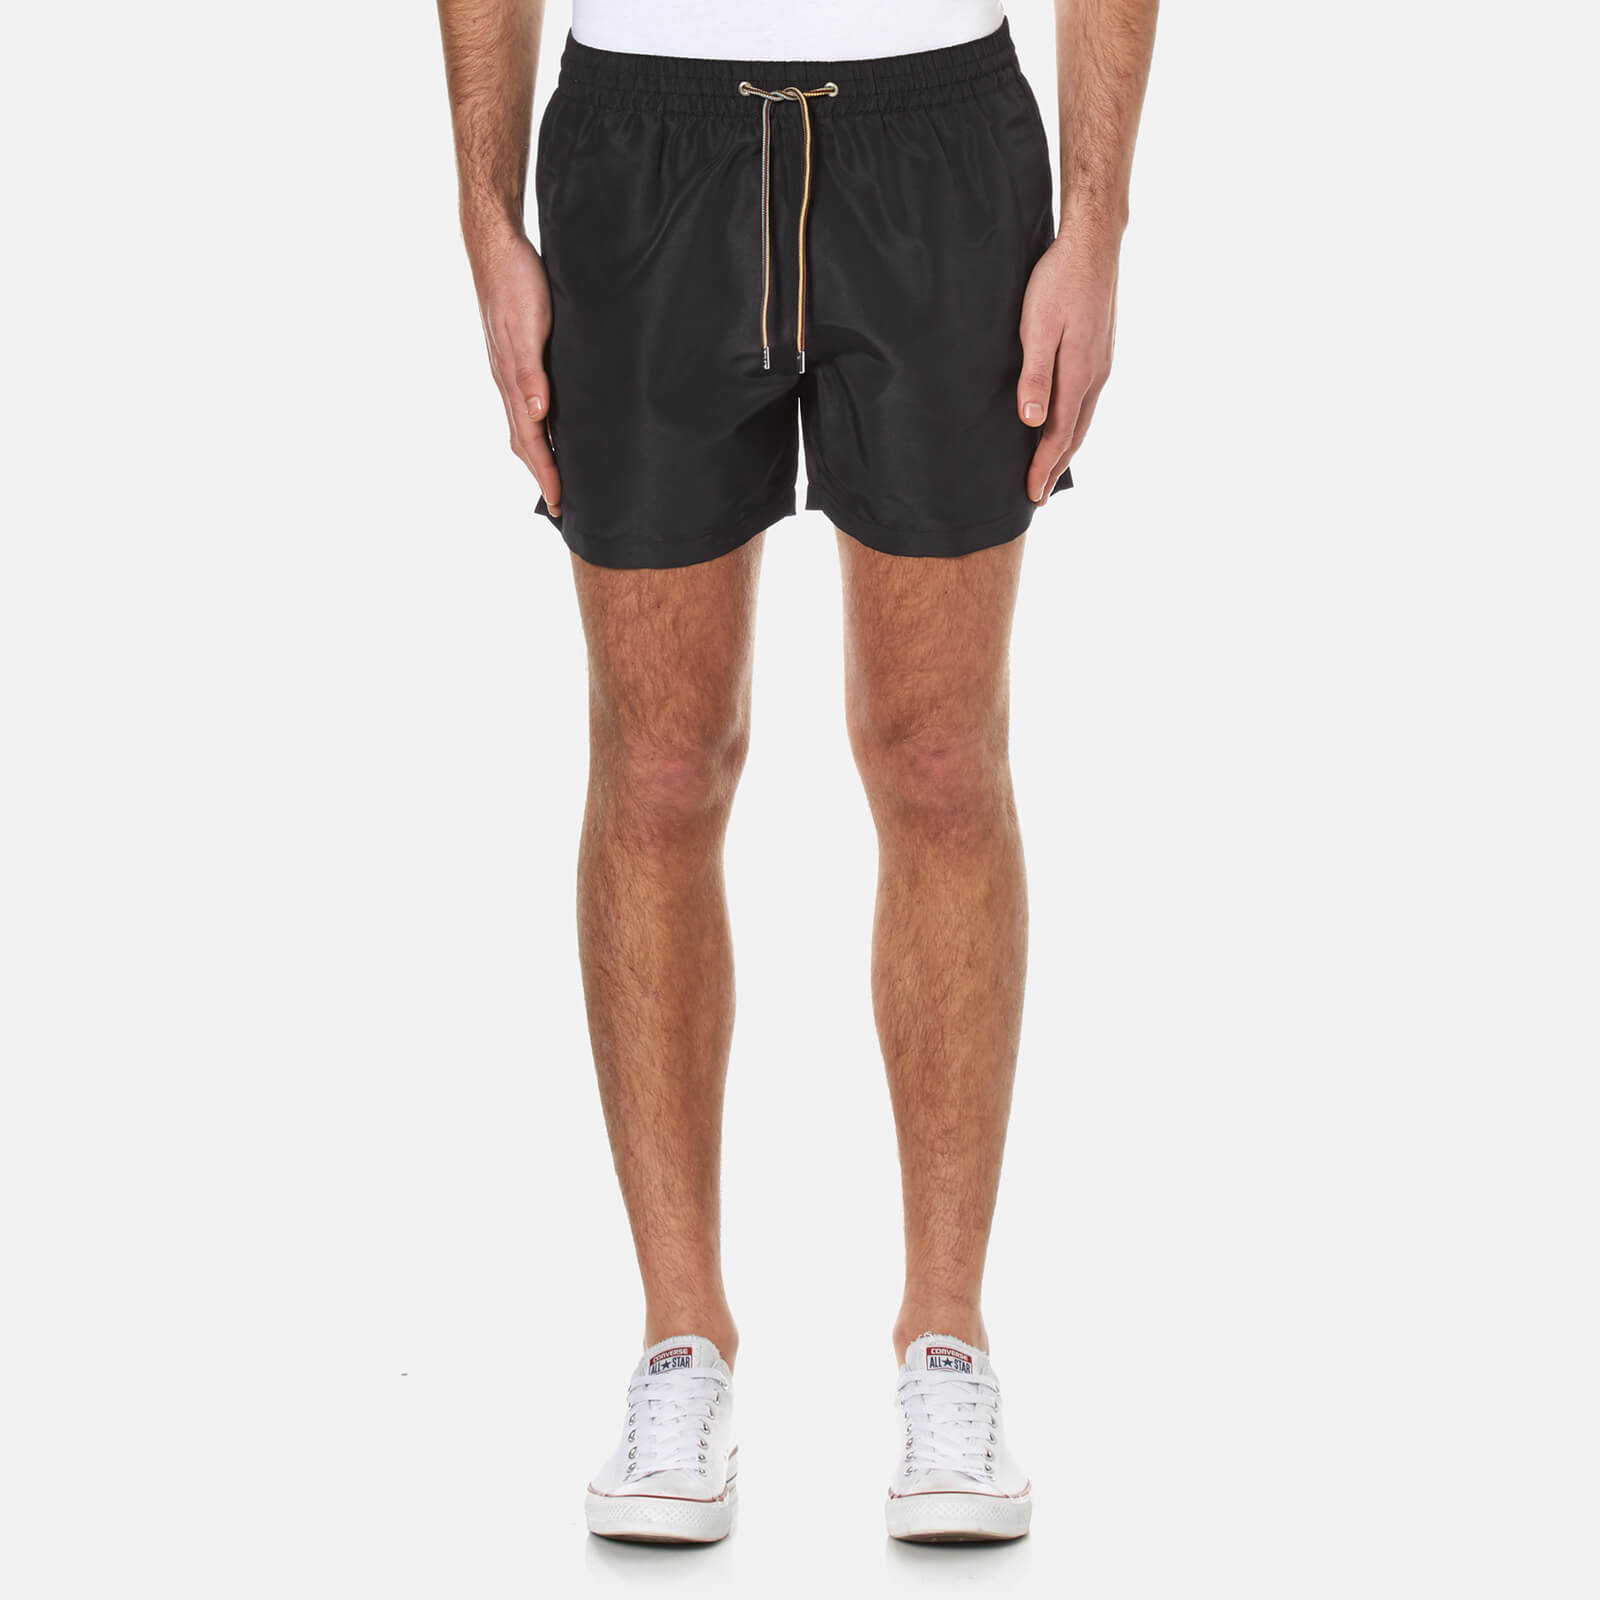 13c6a6f018 Paul Smith Men's Classic Swim Shorts - Black - Free UK Delivery over £50